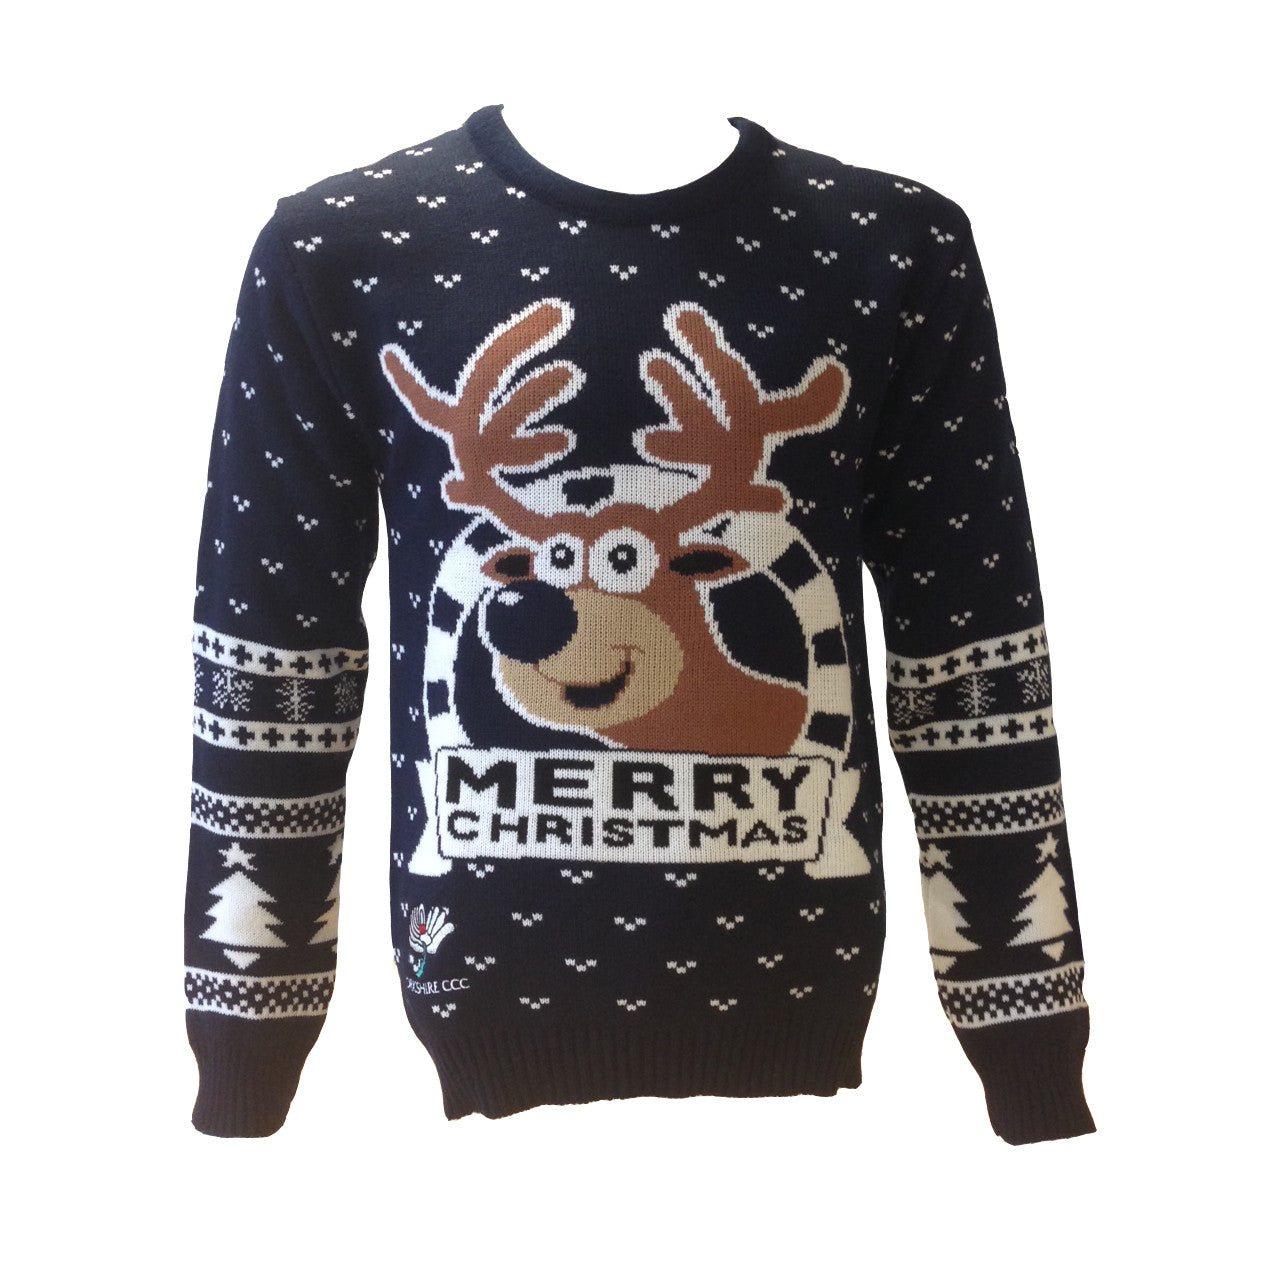 Rudolph Xmas Jumper Starting from 16.00